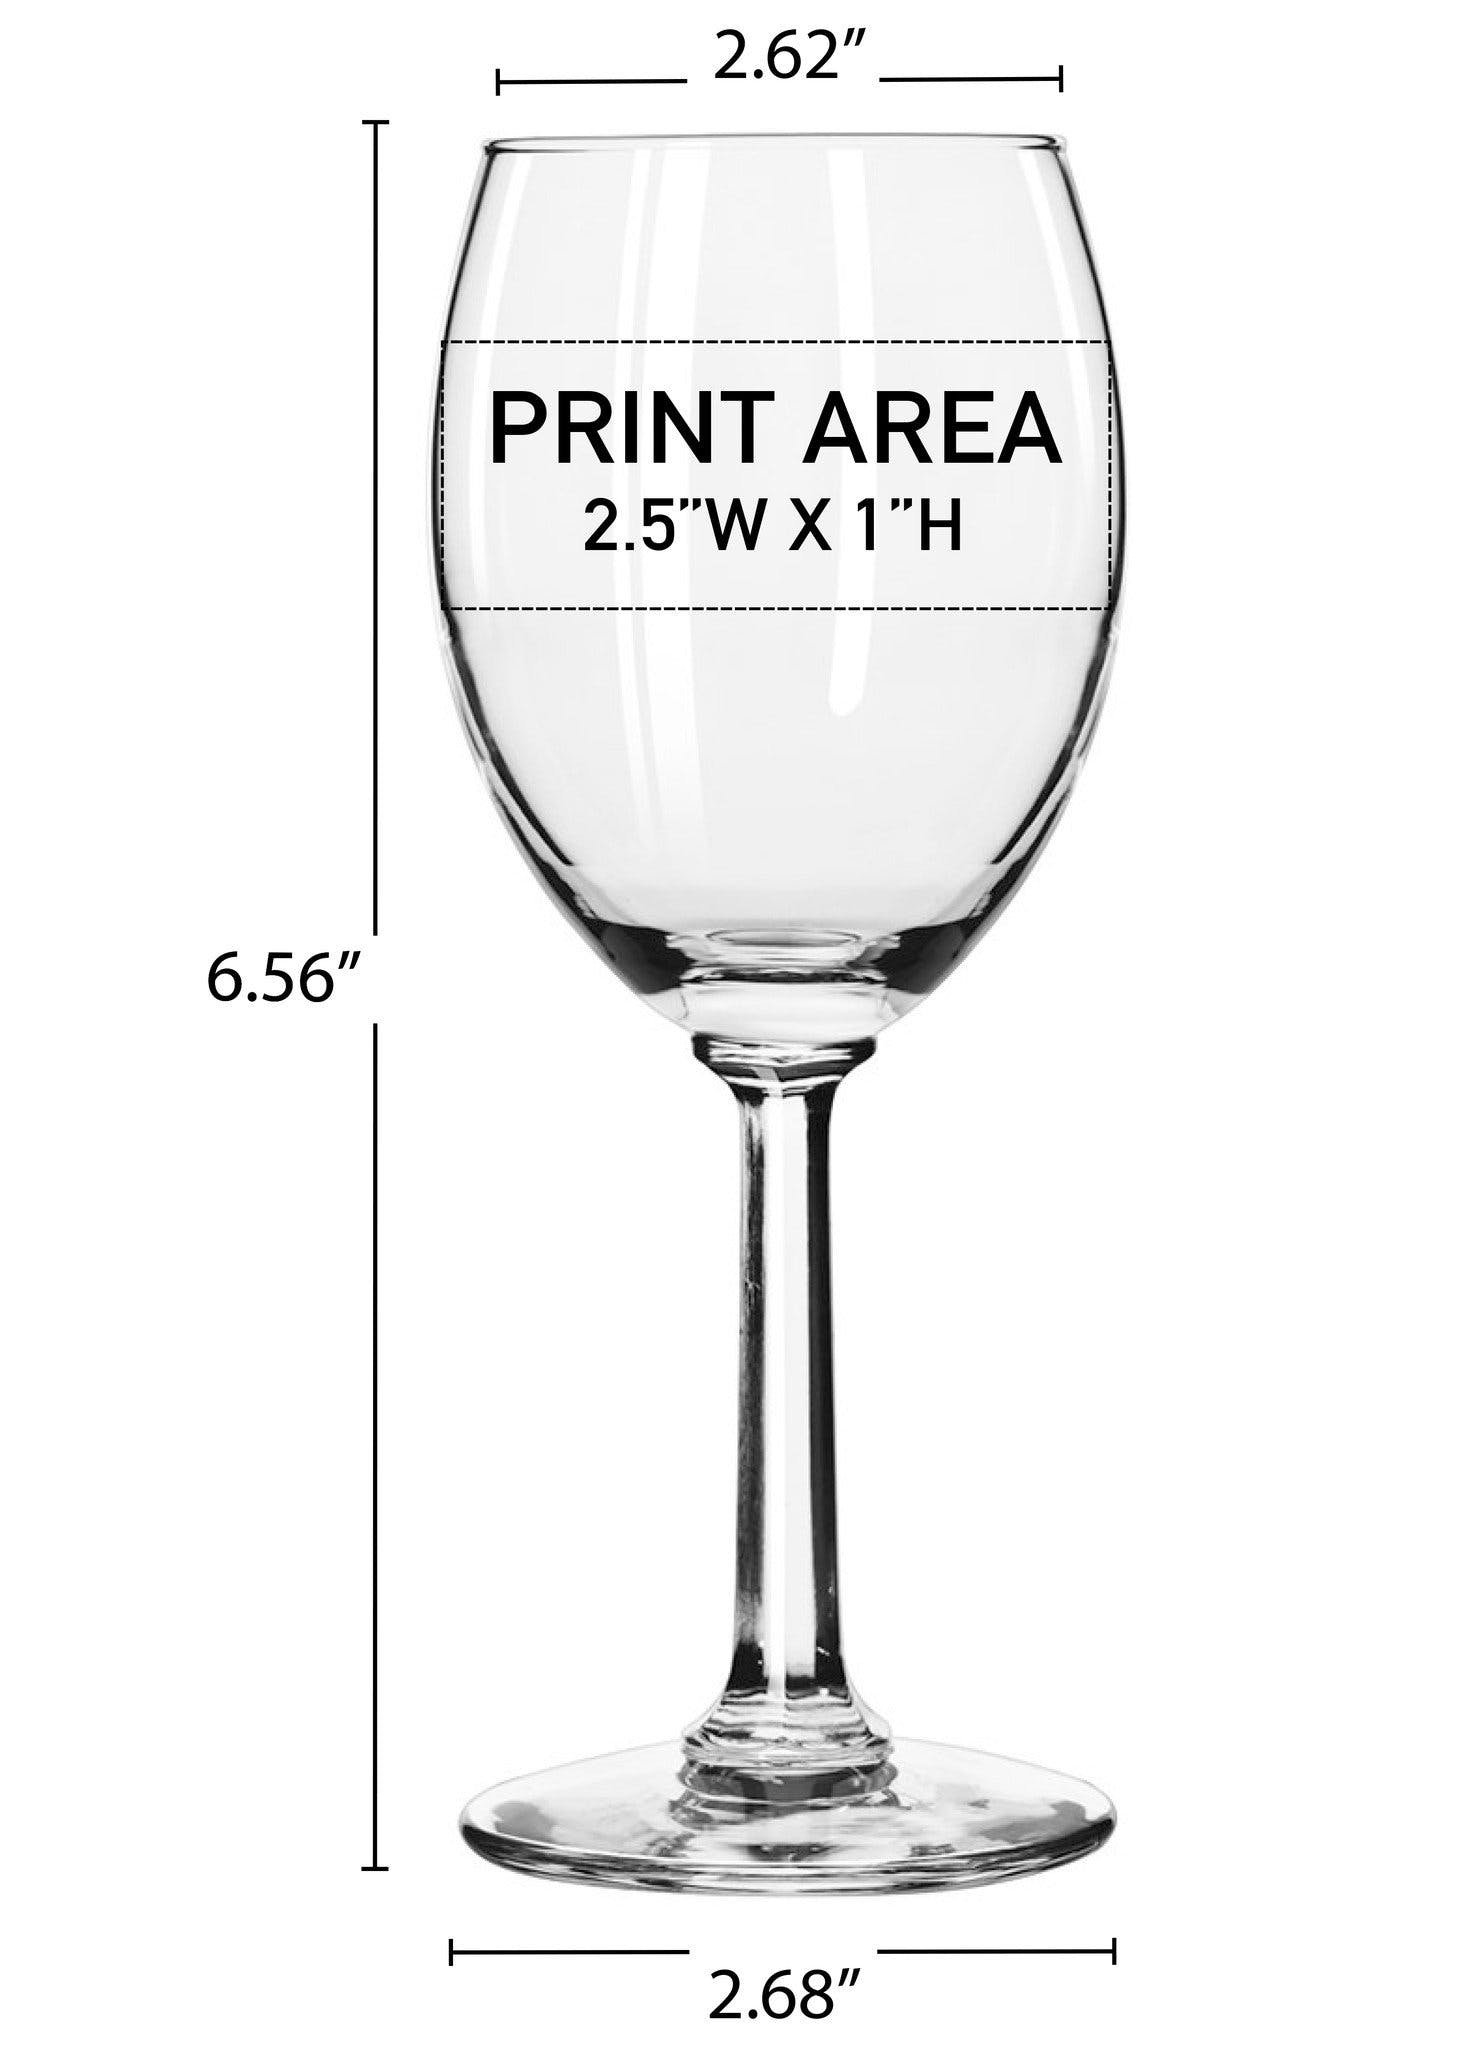 8.5 oz. Optic Stem Wine #302 - sold by Clearwater Gear